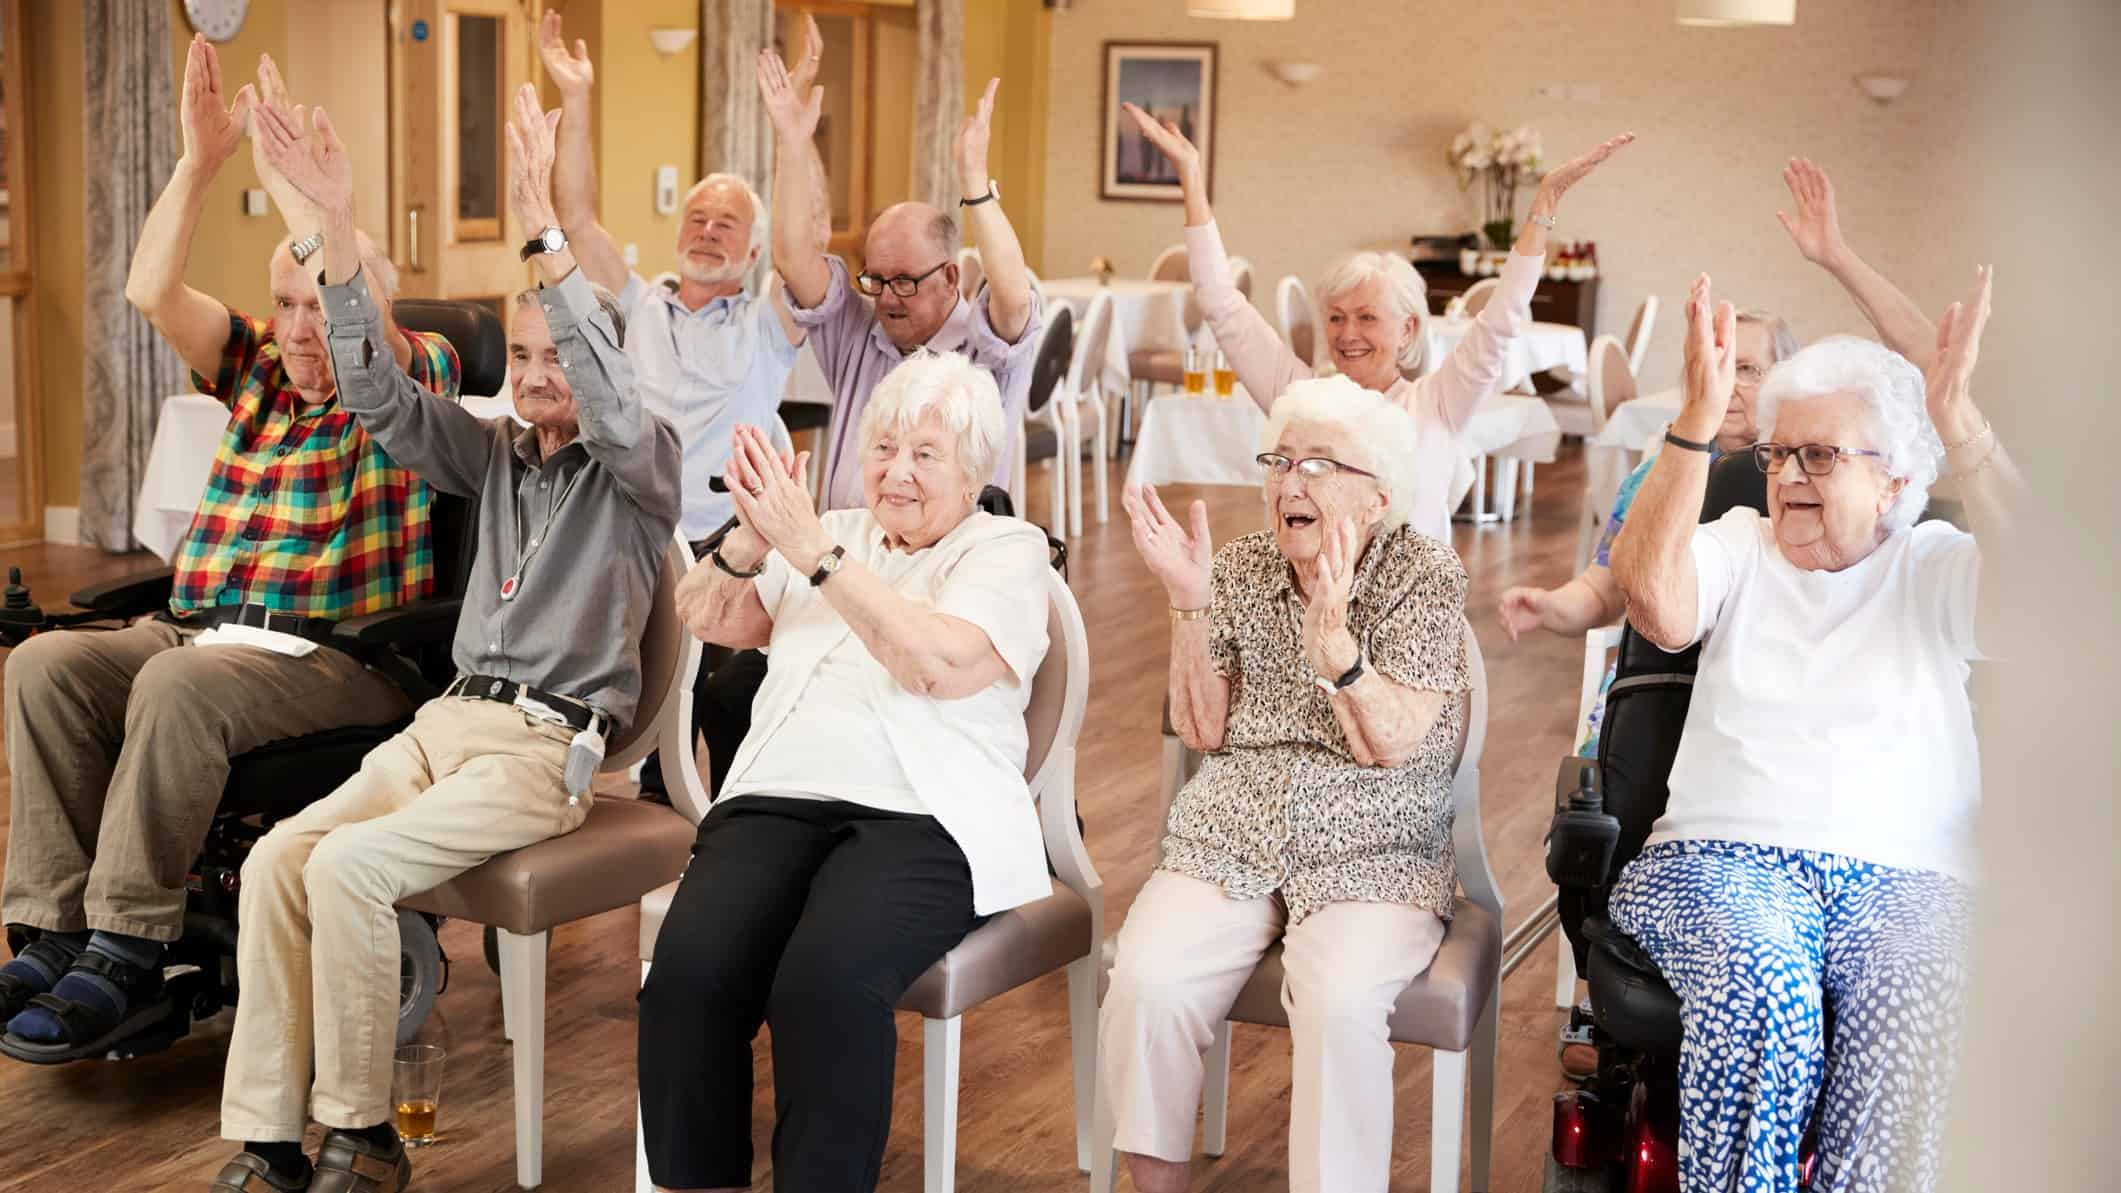 group of seniors happily clapping representing rising eureka share price